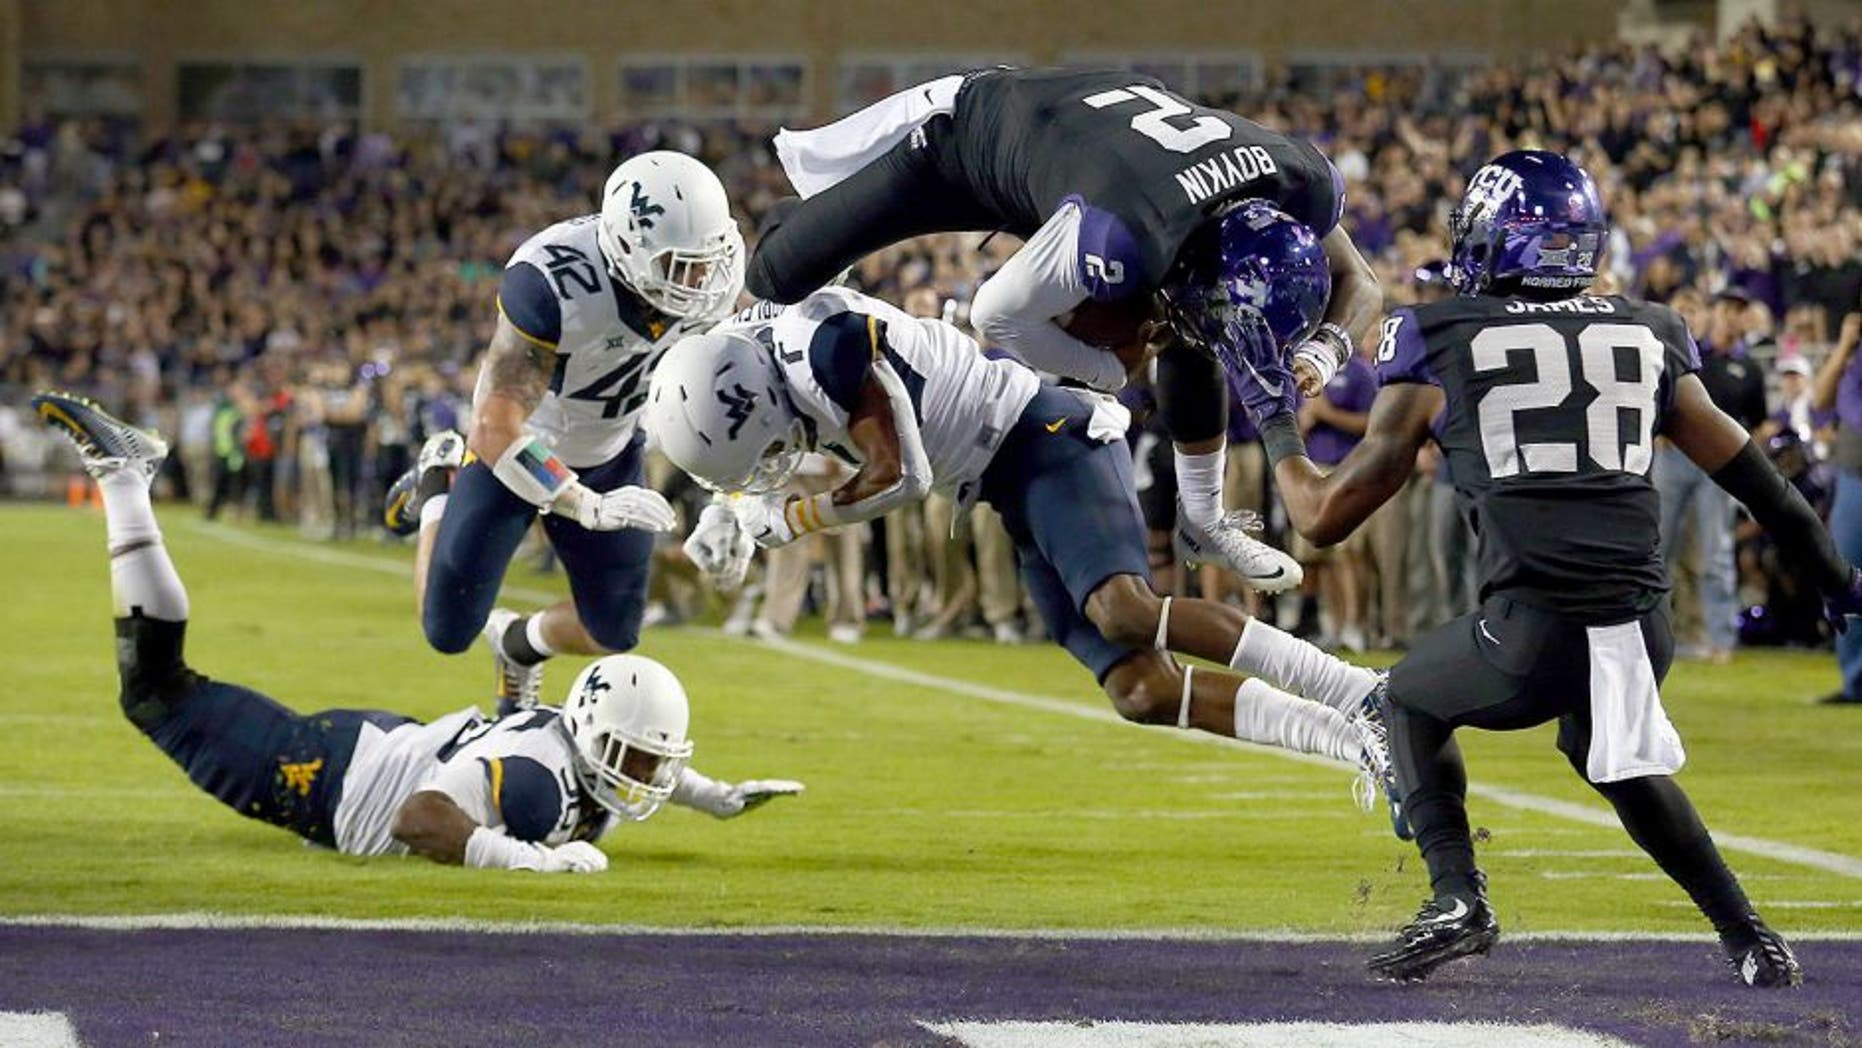 FORT WORTH, TX - OCTOBER 29: Trevone Boykin #2 of the TCU Horned Frogs scores a touchdown against Daryl Worley #7 of the West Virginia Mountaineers in the first quarter at Amon G. Carter Stadium on October 29, 2015 in Fort Worth, Texas. (Photo by Tom Pennington/Getty Images)